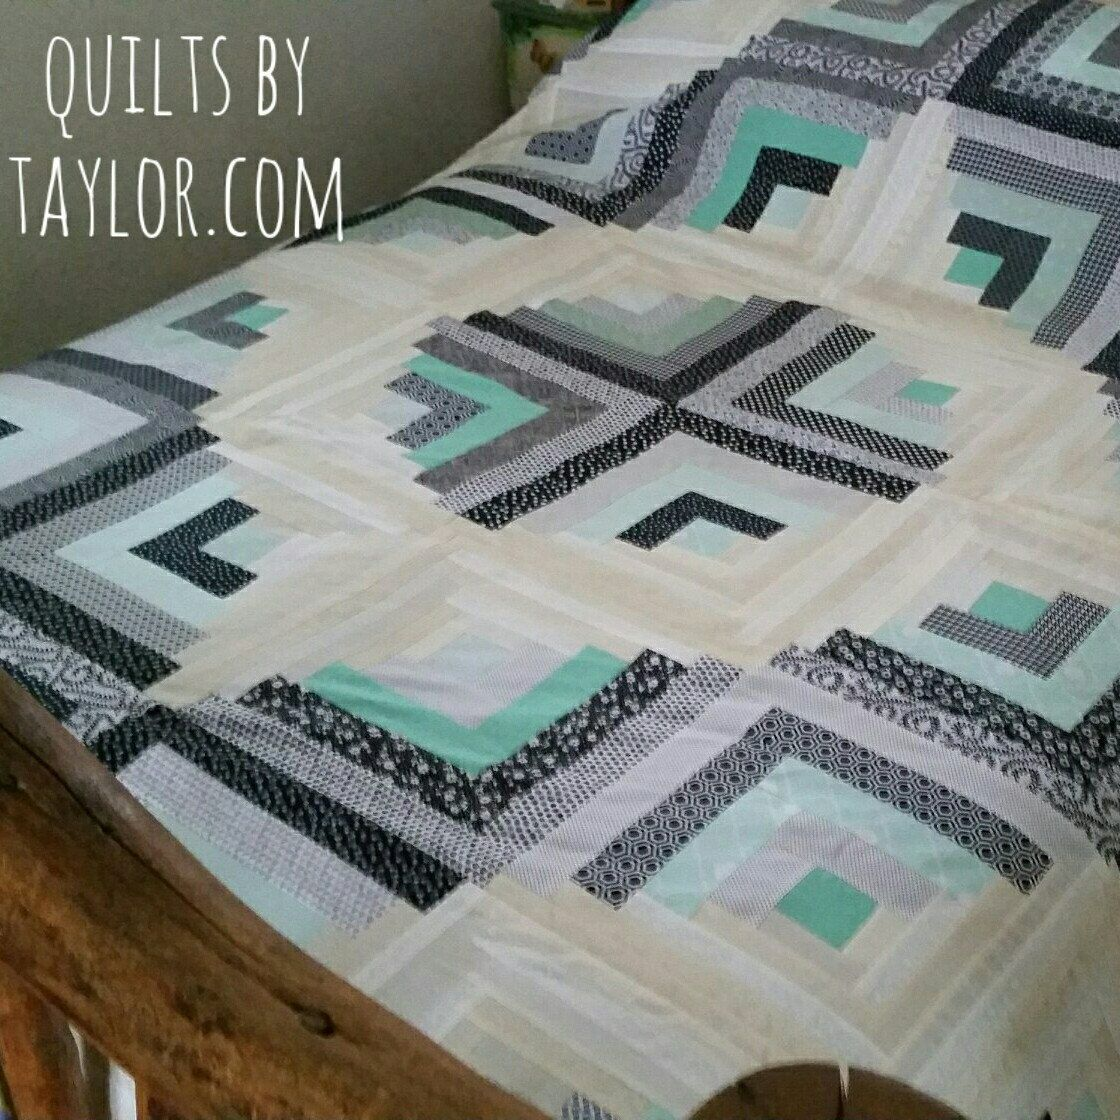 King Size Quilts Quilts For Sale Quiltsbytaylor Com Quilts For Sale King Size Quilt Black And White Quilts Quilts for sale king size